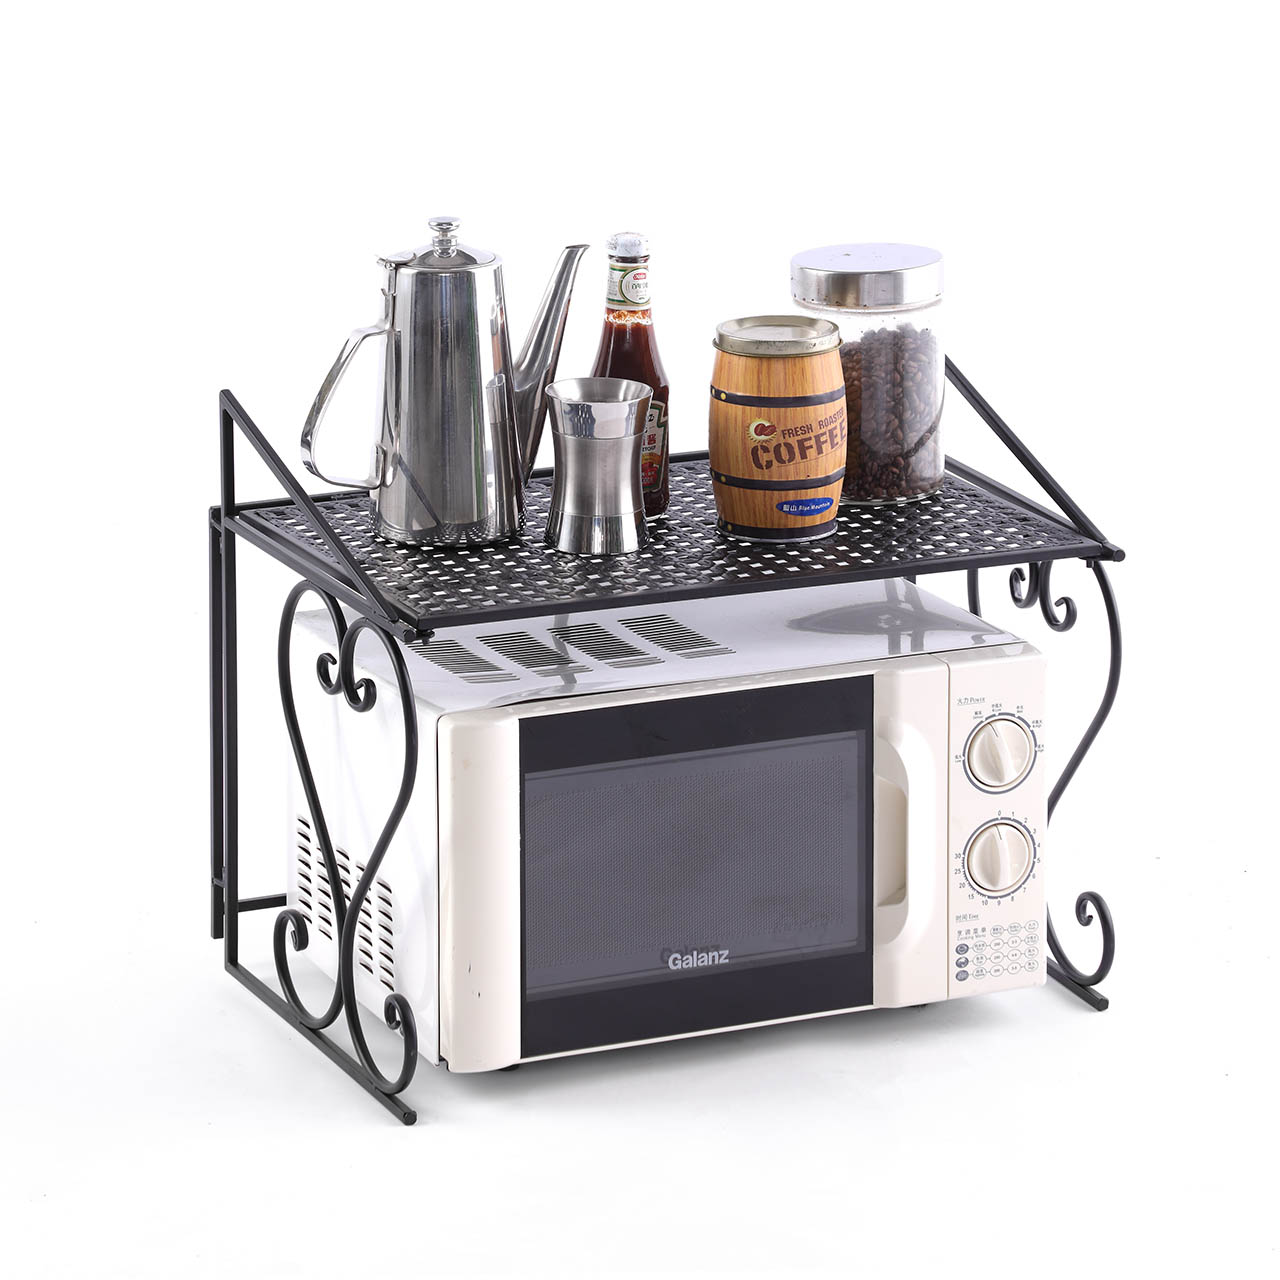 metal microwave oven rack shelf kitchen shelves counter and cabinet shelf by dazone